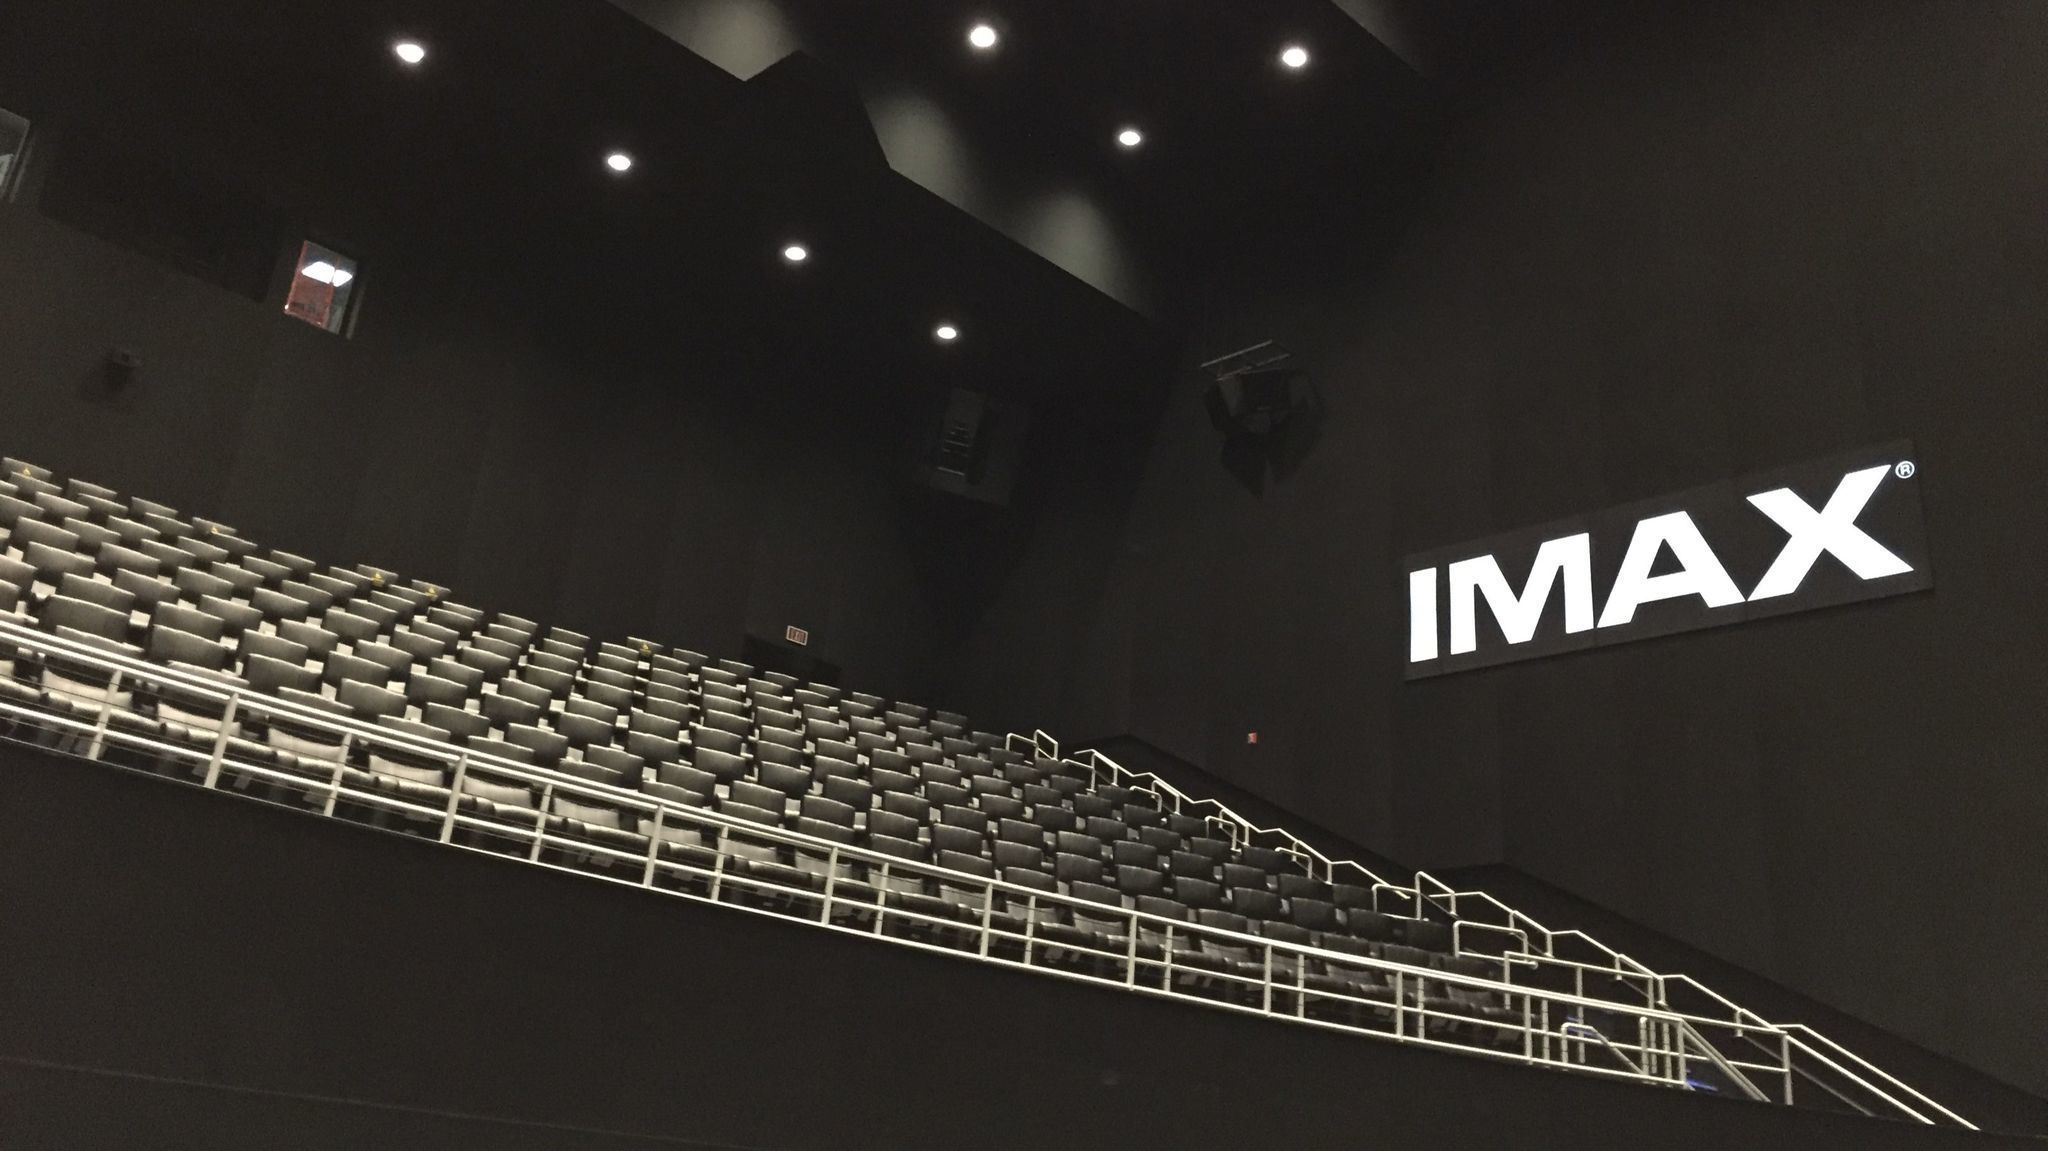 Navy Pier Unveils Redesigned Imax Theater After Summer Long